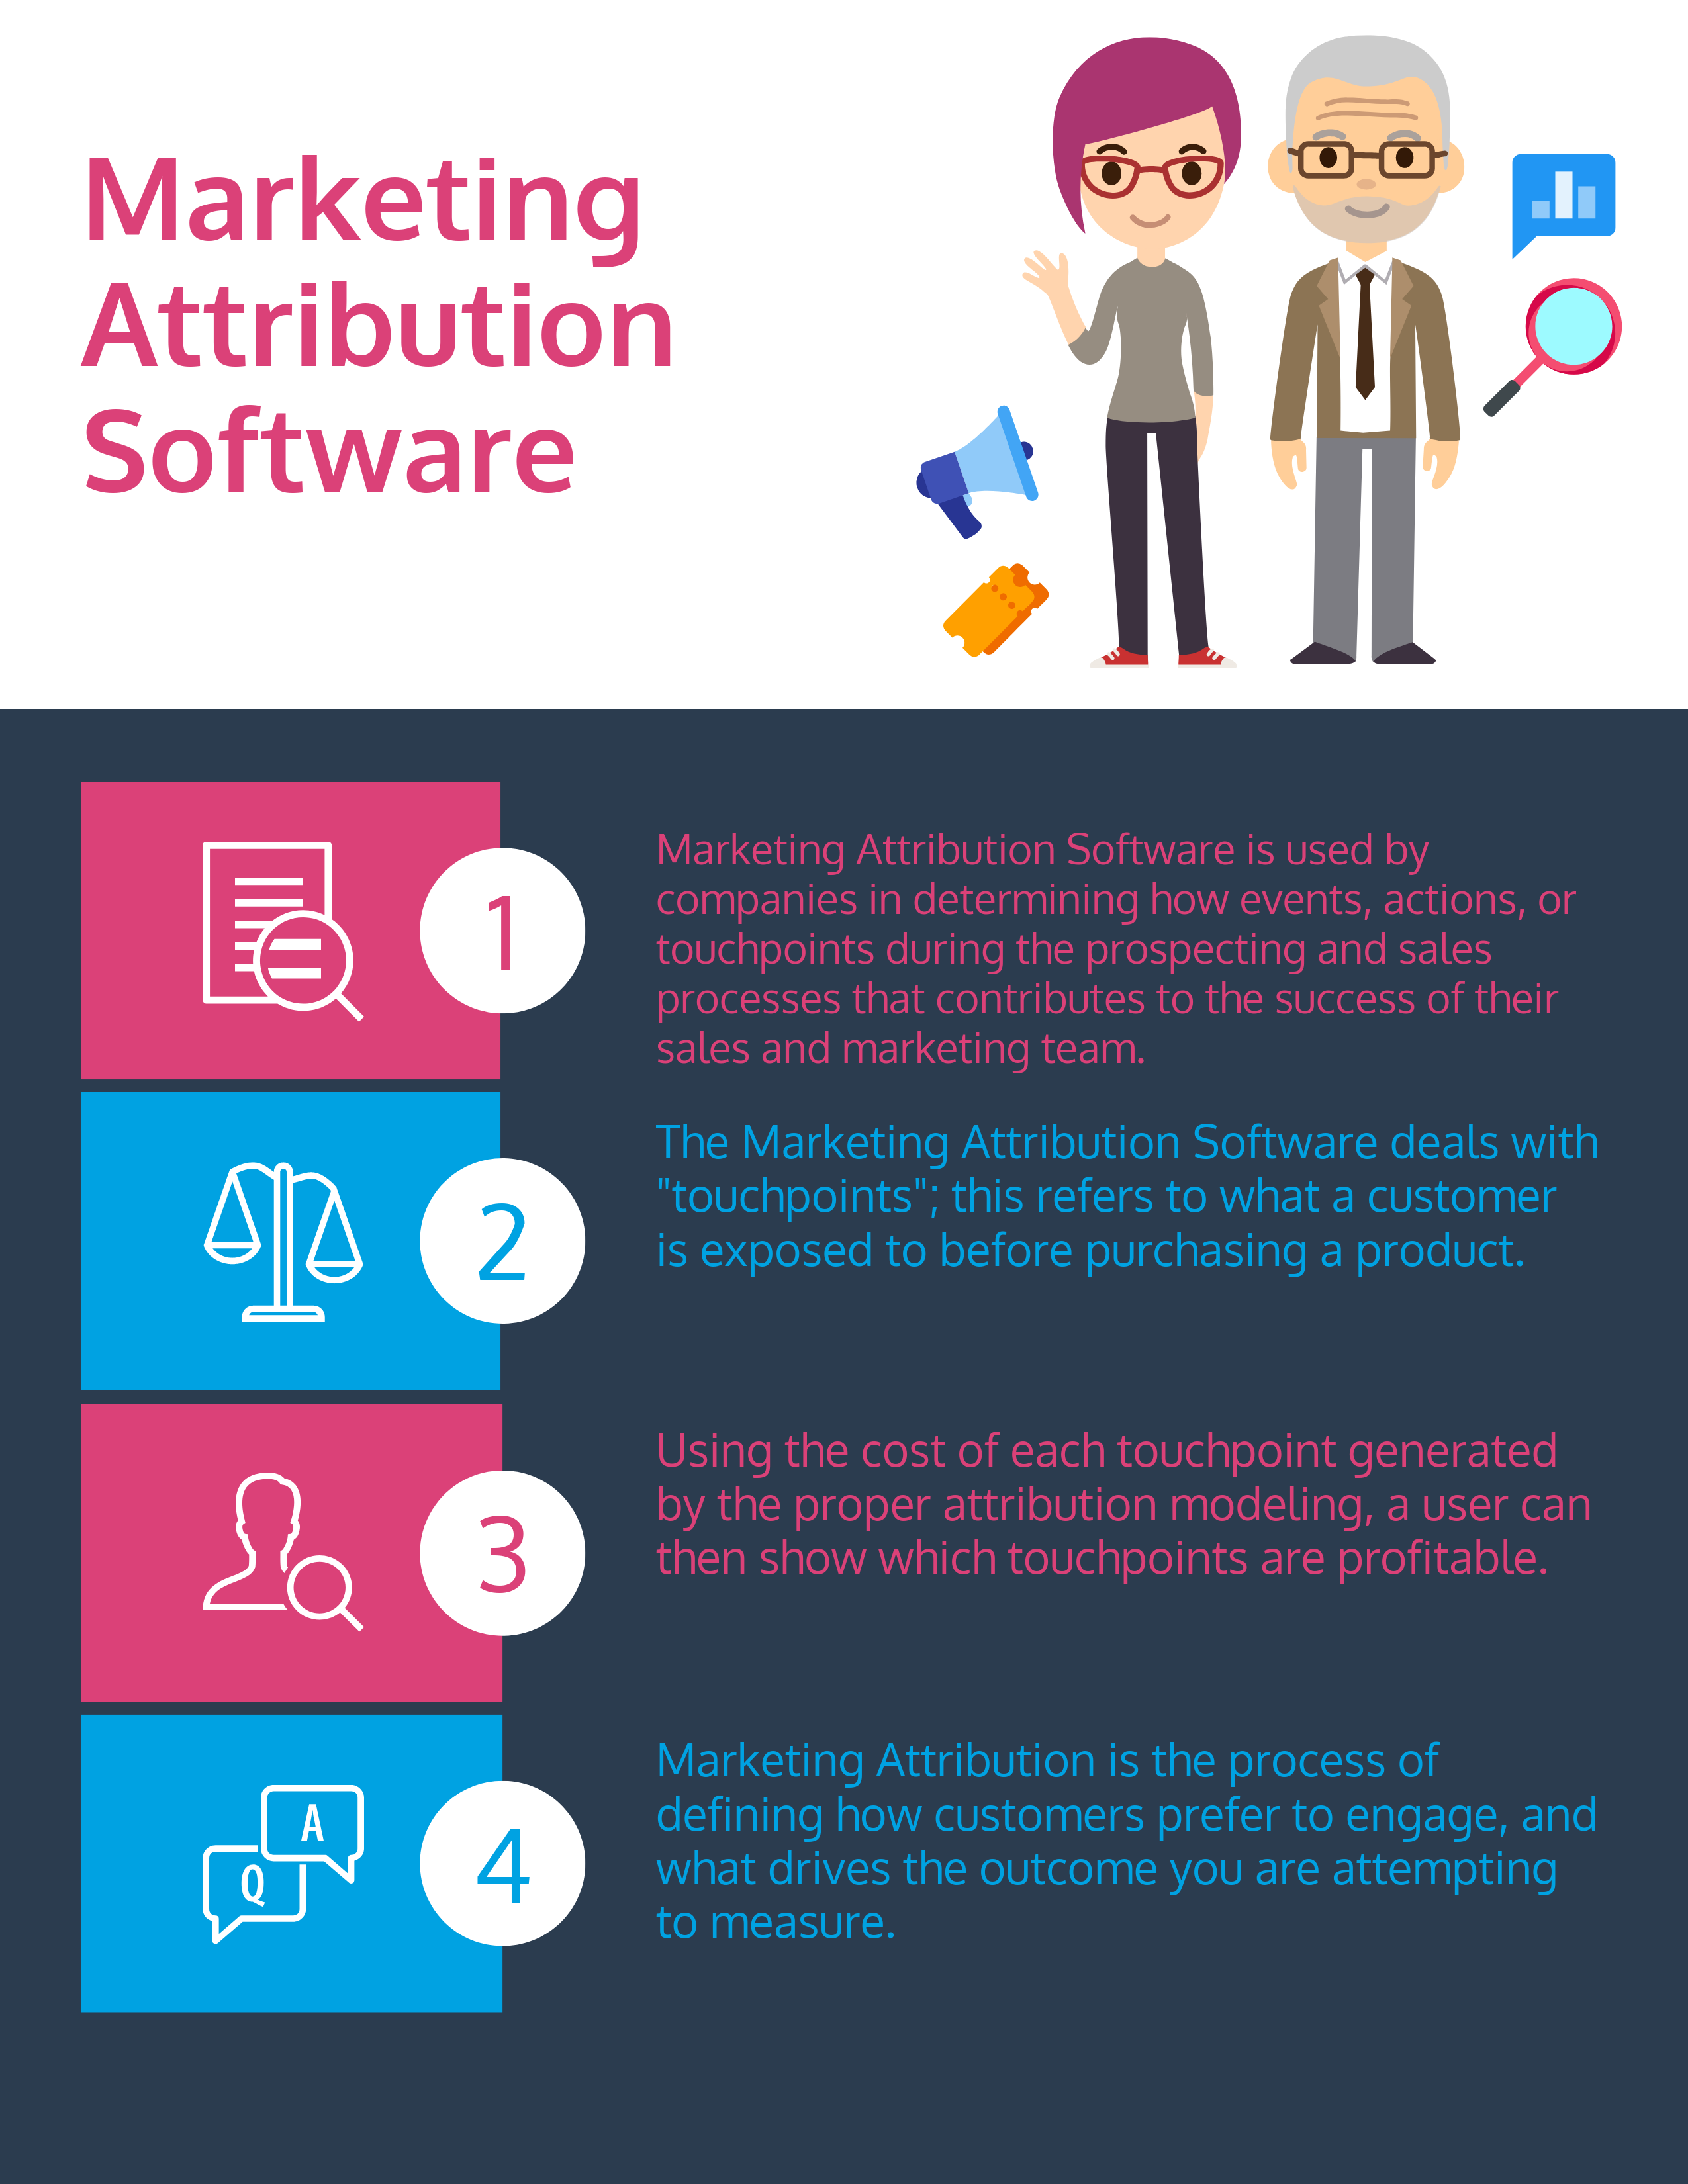 What are Marketing Attribution Software